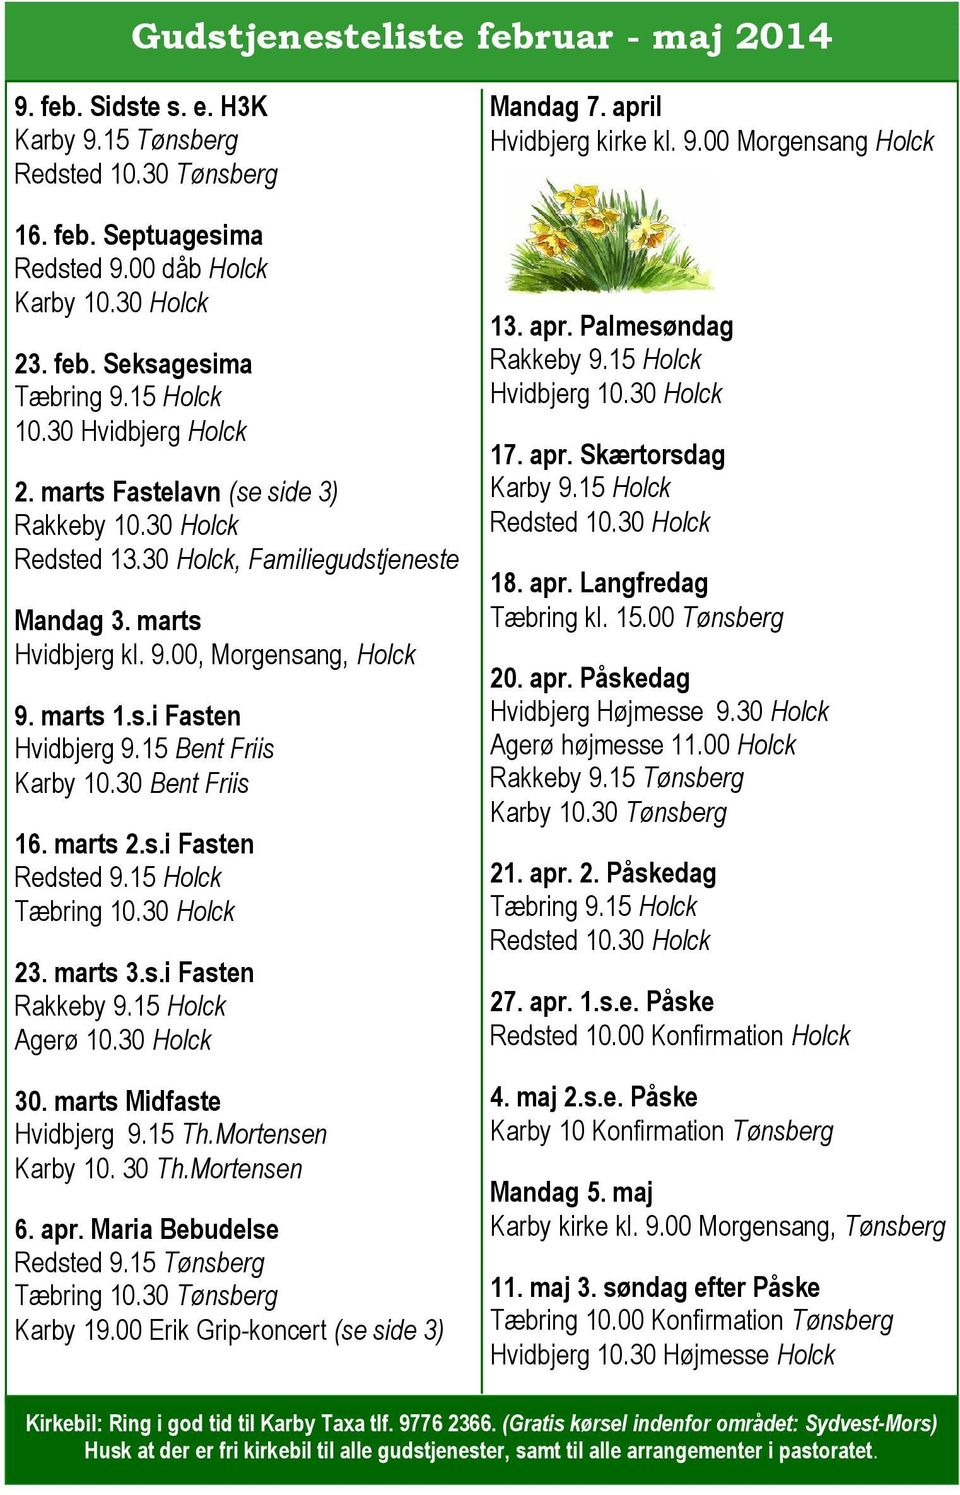 15 Bent Friis Karby 10.30 Bent Friis 16. marts 2.s.i Fasten Redsted 9.15 Holck Tæbring 10.30 Holck 23. marts 3.s.i Fasten Rakkeby 9.15 Holck Agerø 10.30 Holck 30. marts Midfaste Hvidbjerg 9.15 Th.